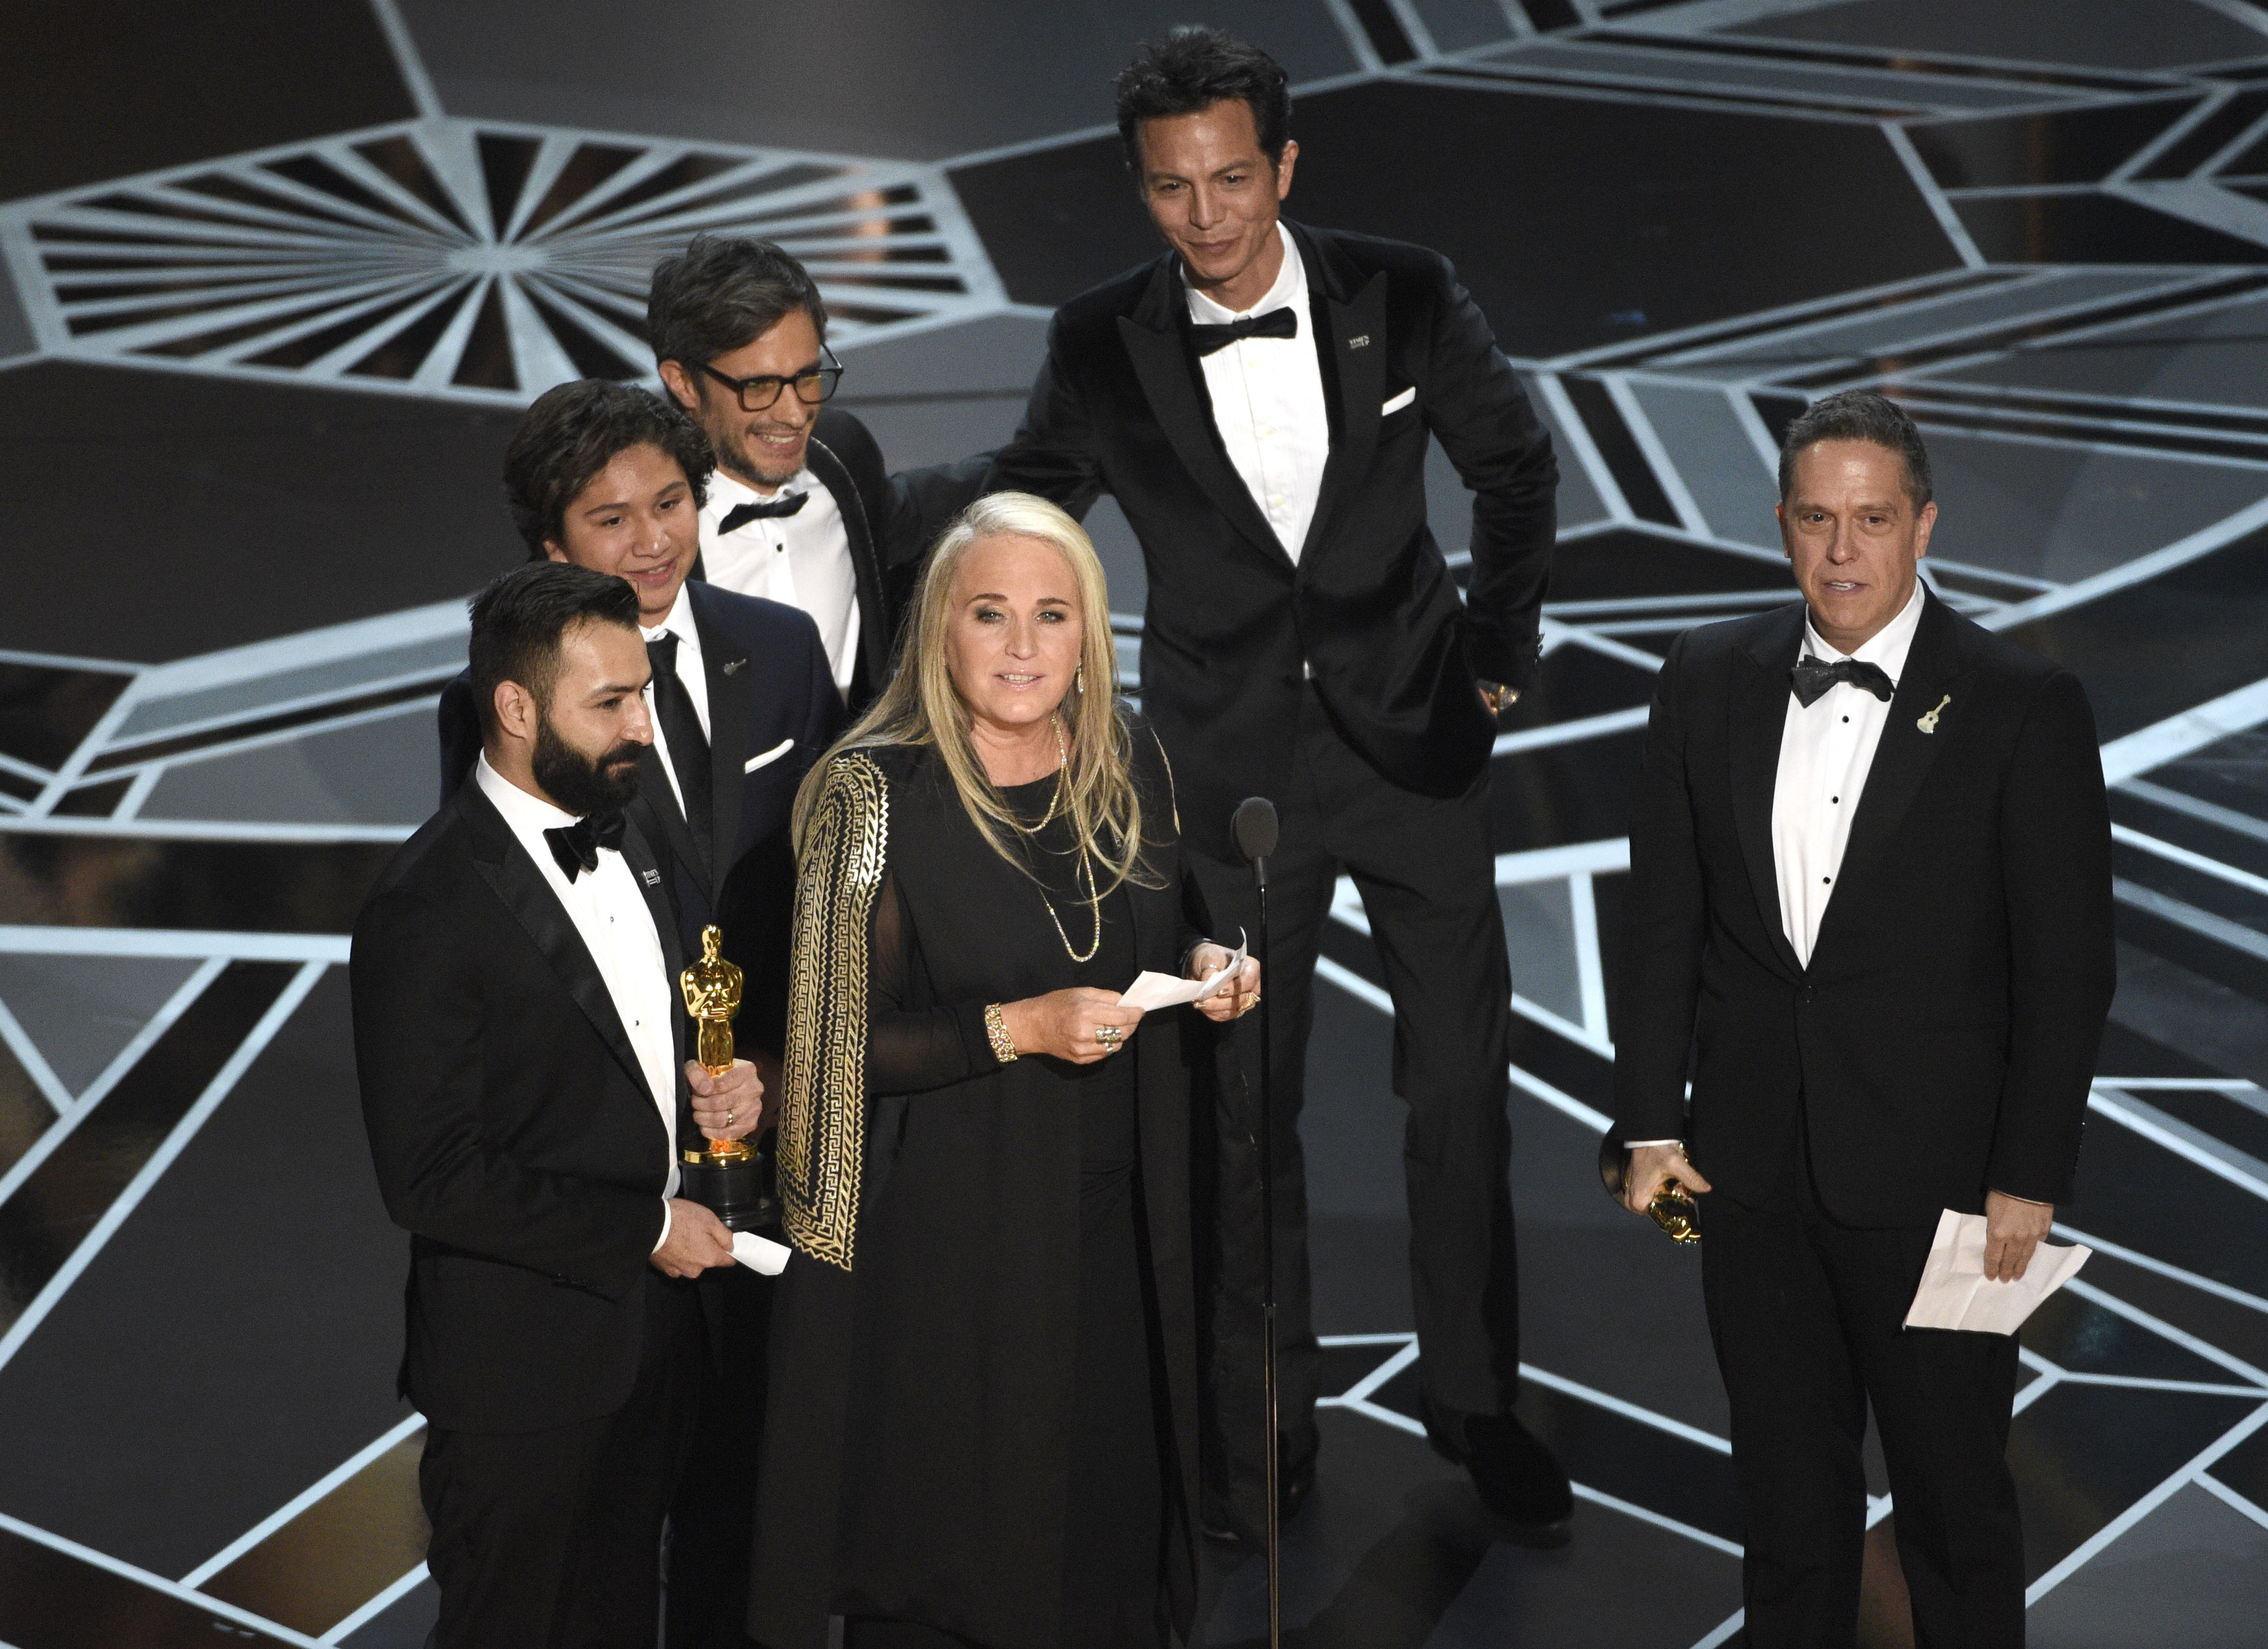 "Darla K. Anderson, Adrian Molina, Anthony Gonzalez, Gael Garcia Bernal, Benjamin Bratt, Lee Unkrich. Darla K. Anderson, center, and from back left, Adrian Molina, Anthony Gonzalez, Gael Garcia Bernal, Benjamin Bratt, and Lee Unkrich accept the award for best animated feature film for ""Coco"" at the Oscars, at the Dolby Theatre in Los Angeles90th Academy Awards - Show, Los Angeles, USA - 04 Mar 2018"